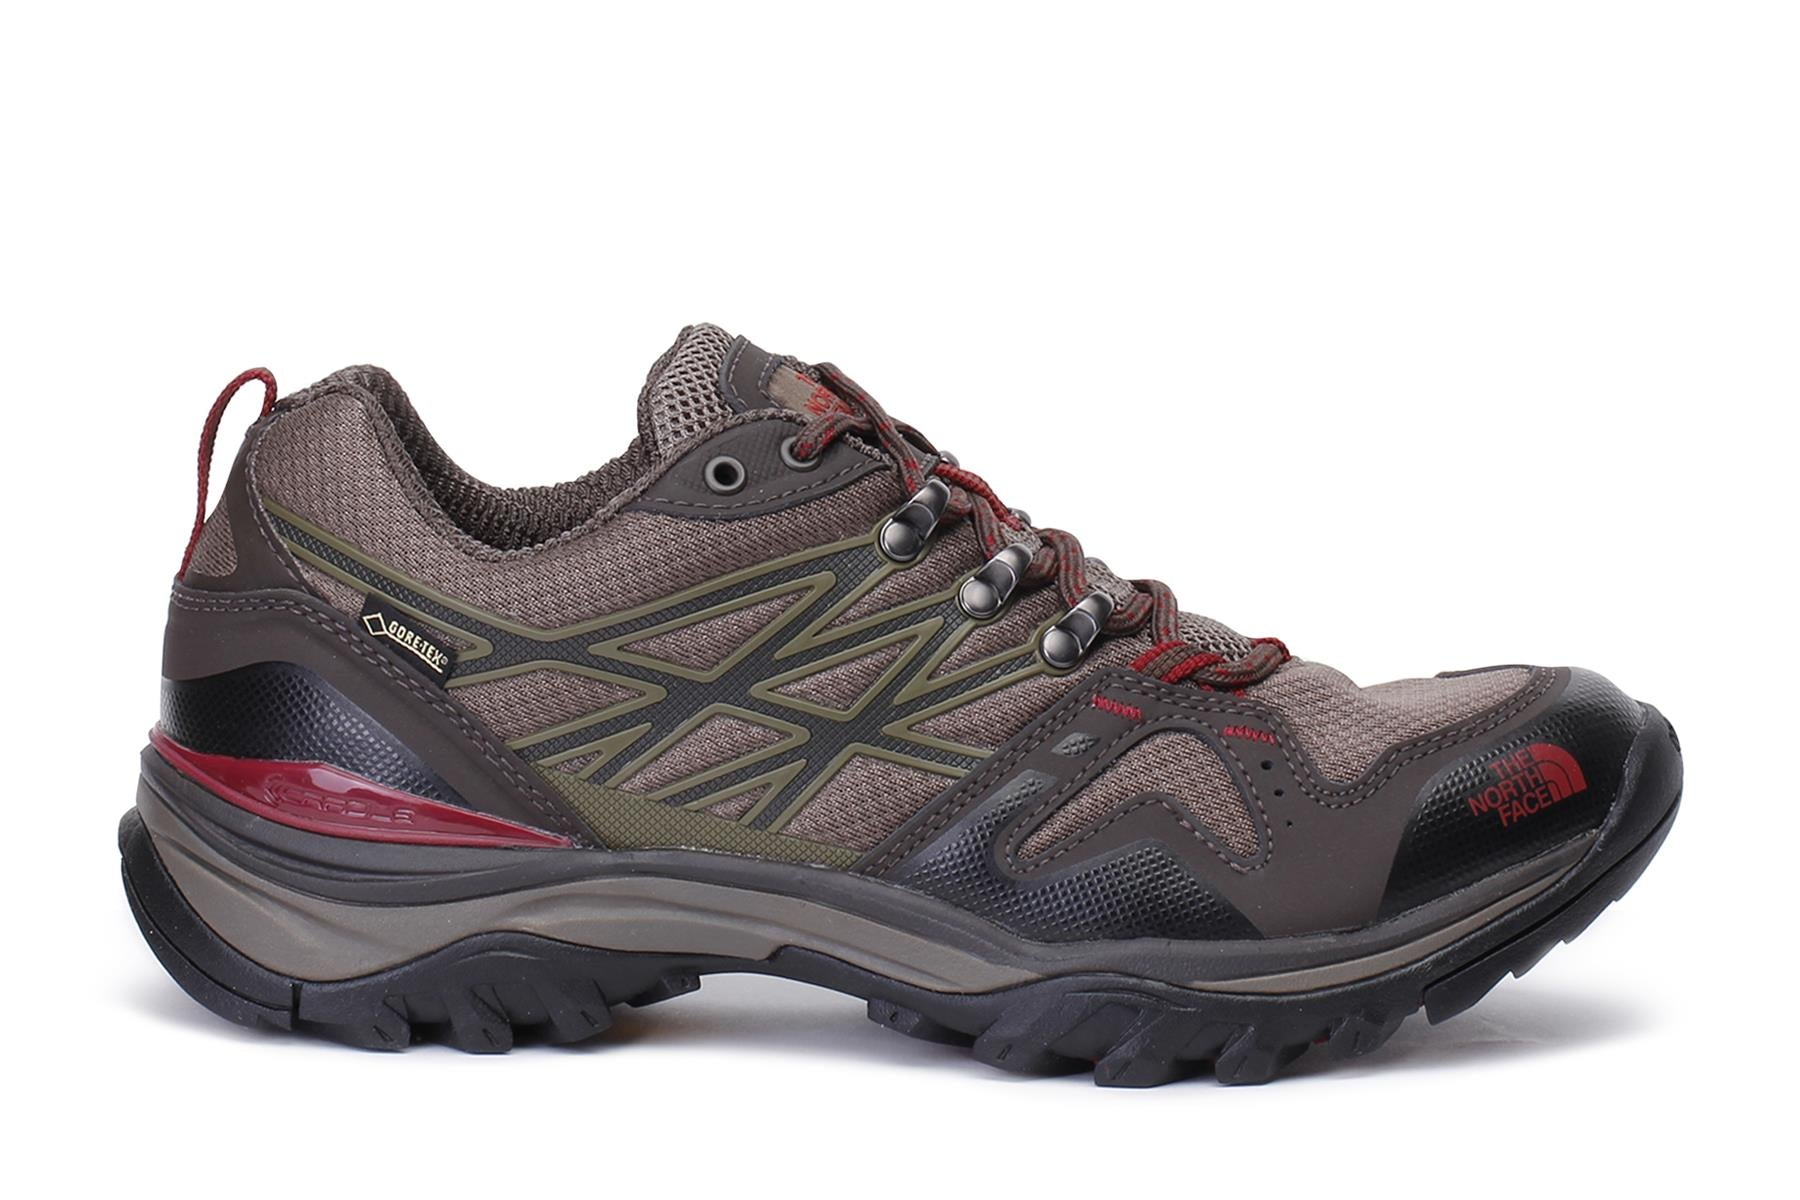 the-north-face-mens-hedgehog-fastpack-gtx-hiking-shoes-brown-red-cdf8azl-main